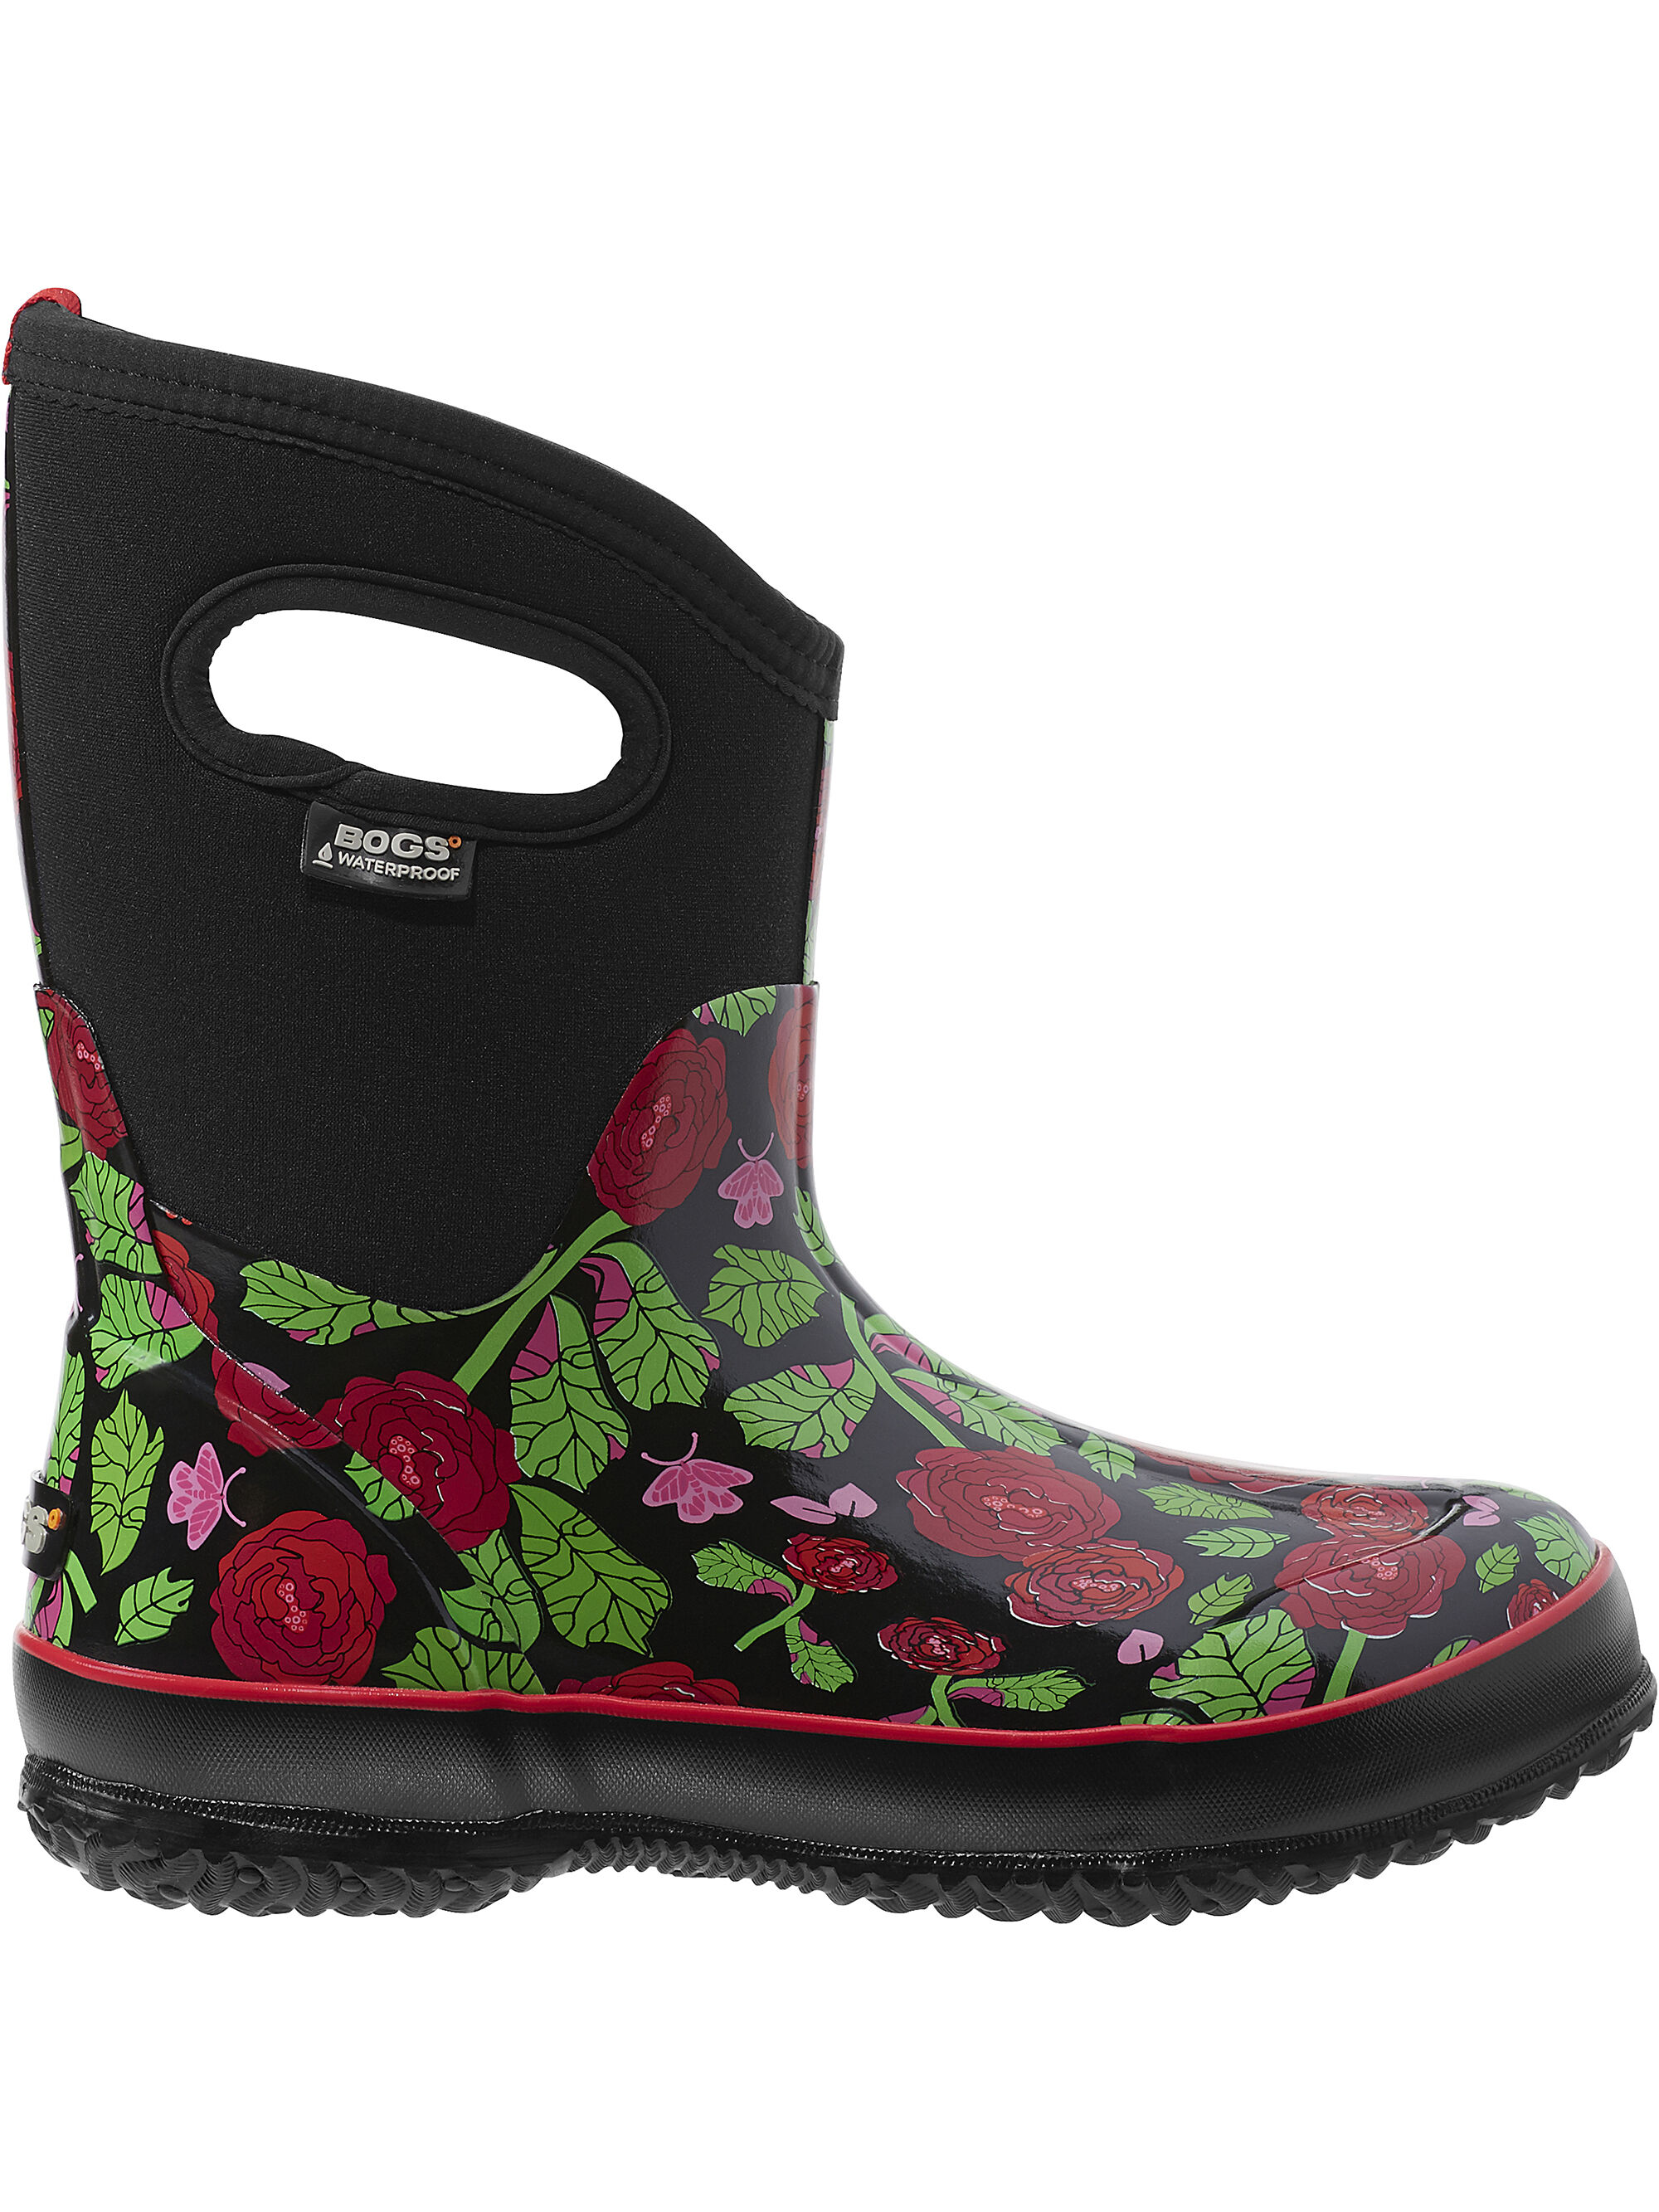 Garden Clogs Garden Shoes and Garden Boots Gardenerscom